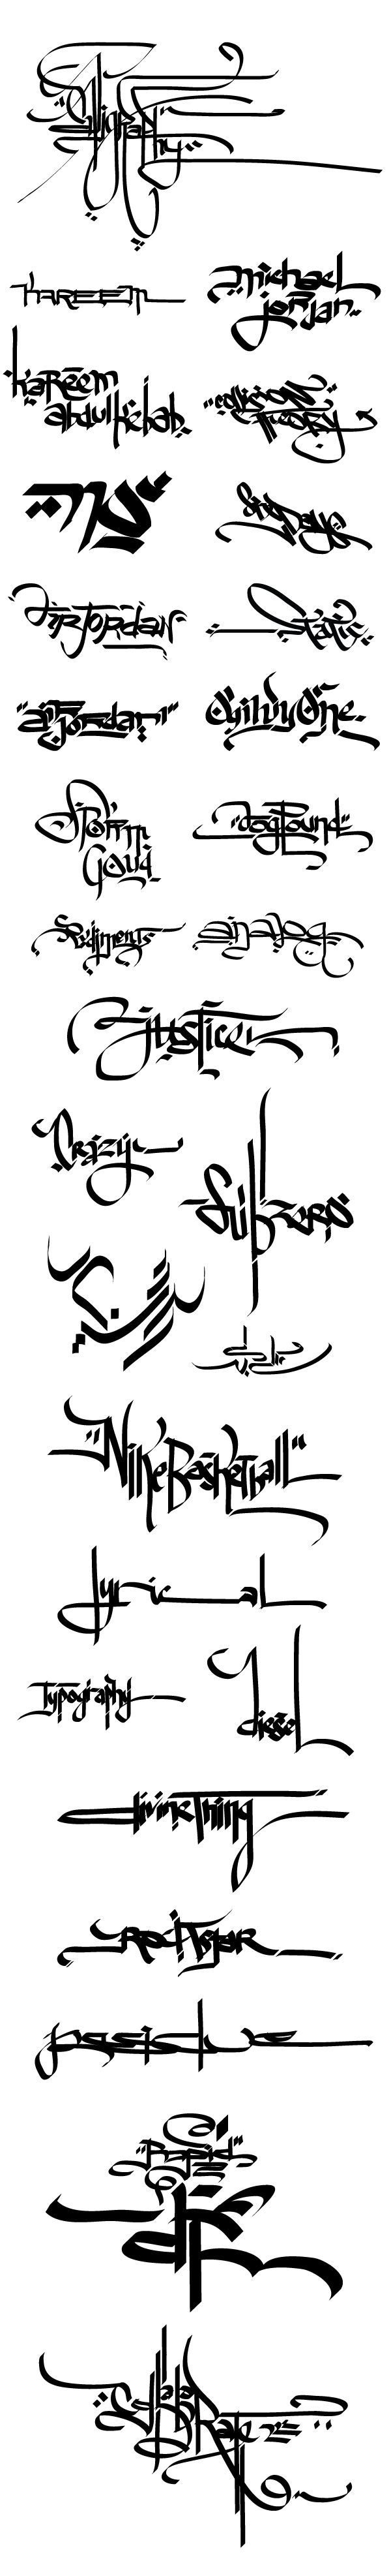 Calligraphy / Handstyles / Typography by AJ Dimarucot, via Behance